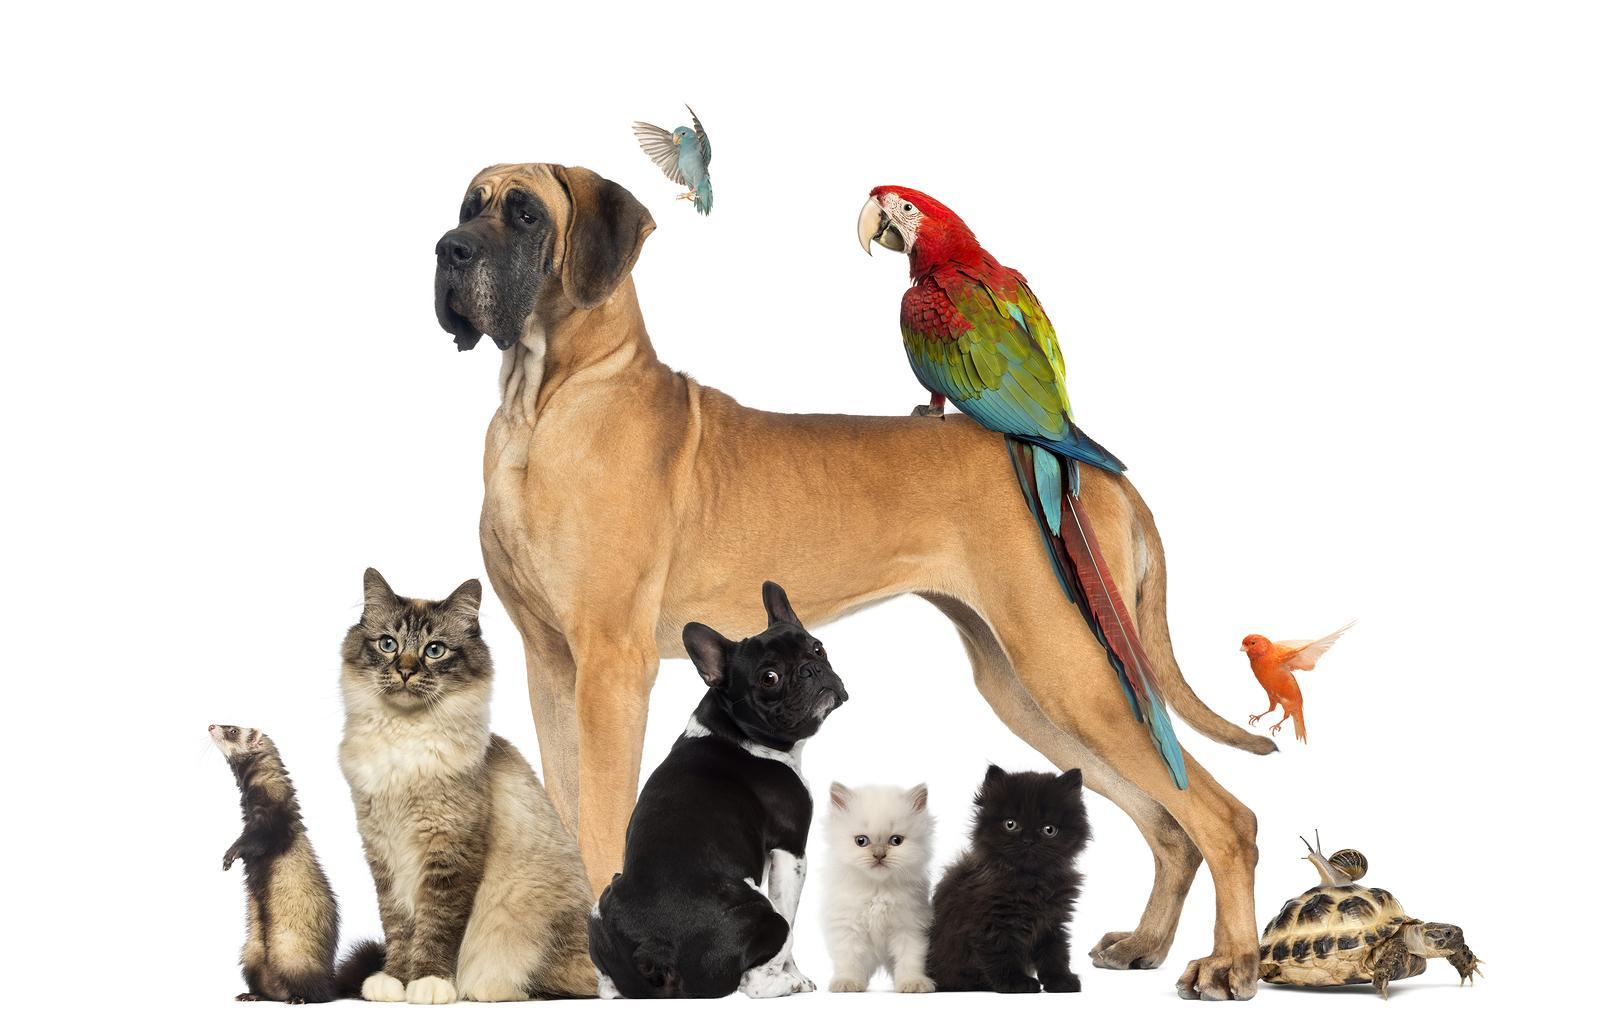 Which animal would you keep as a pet?